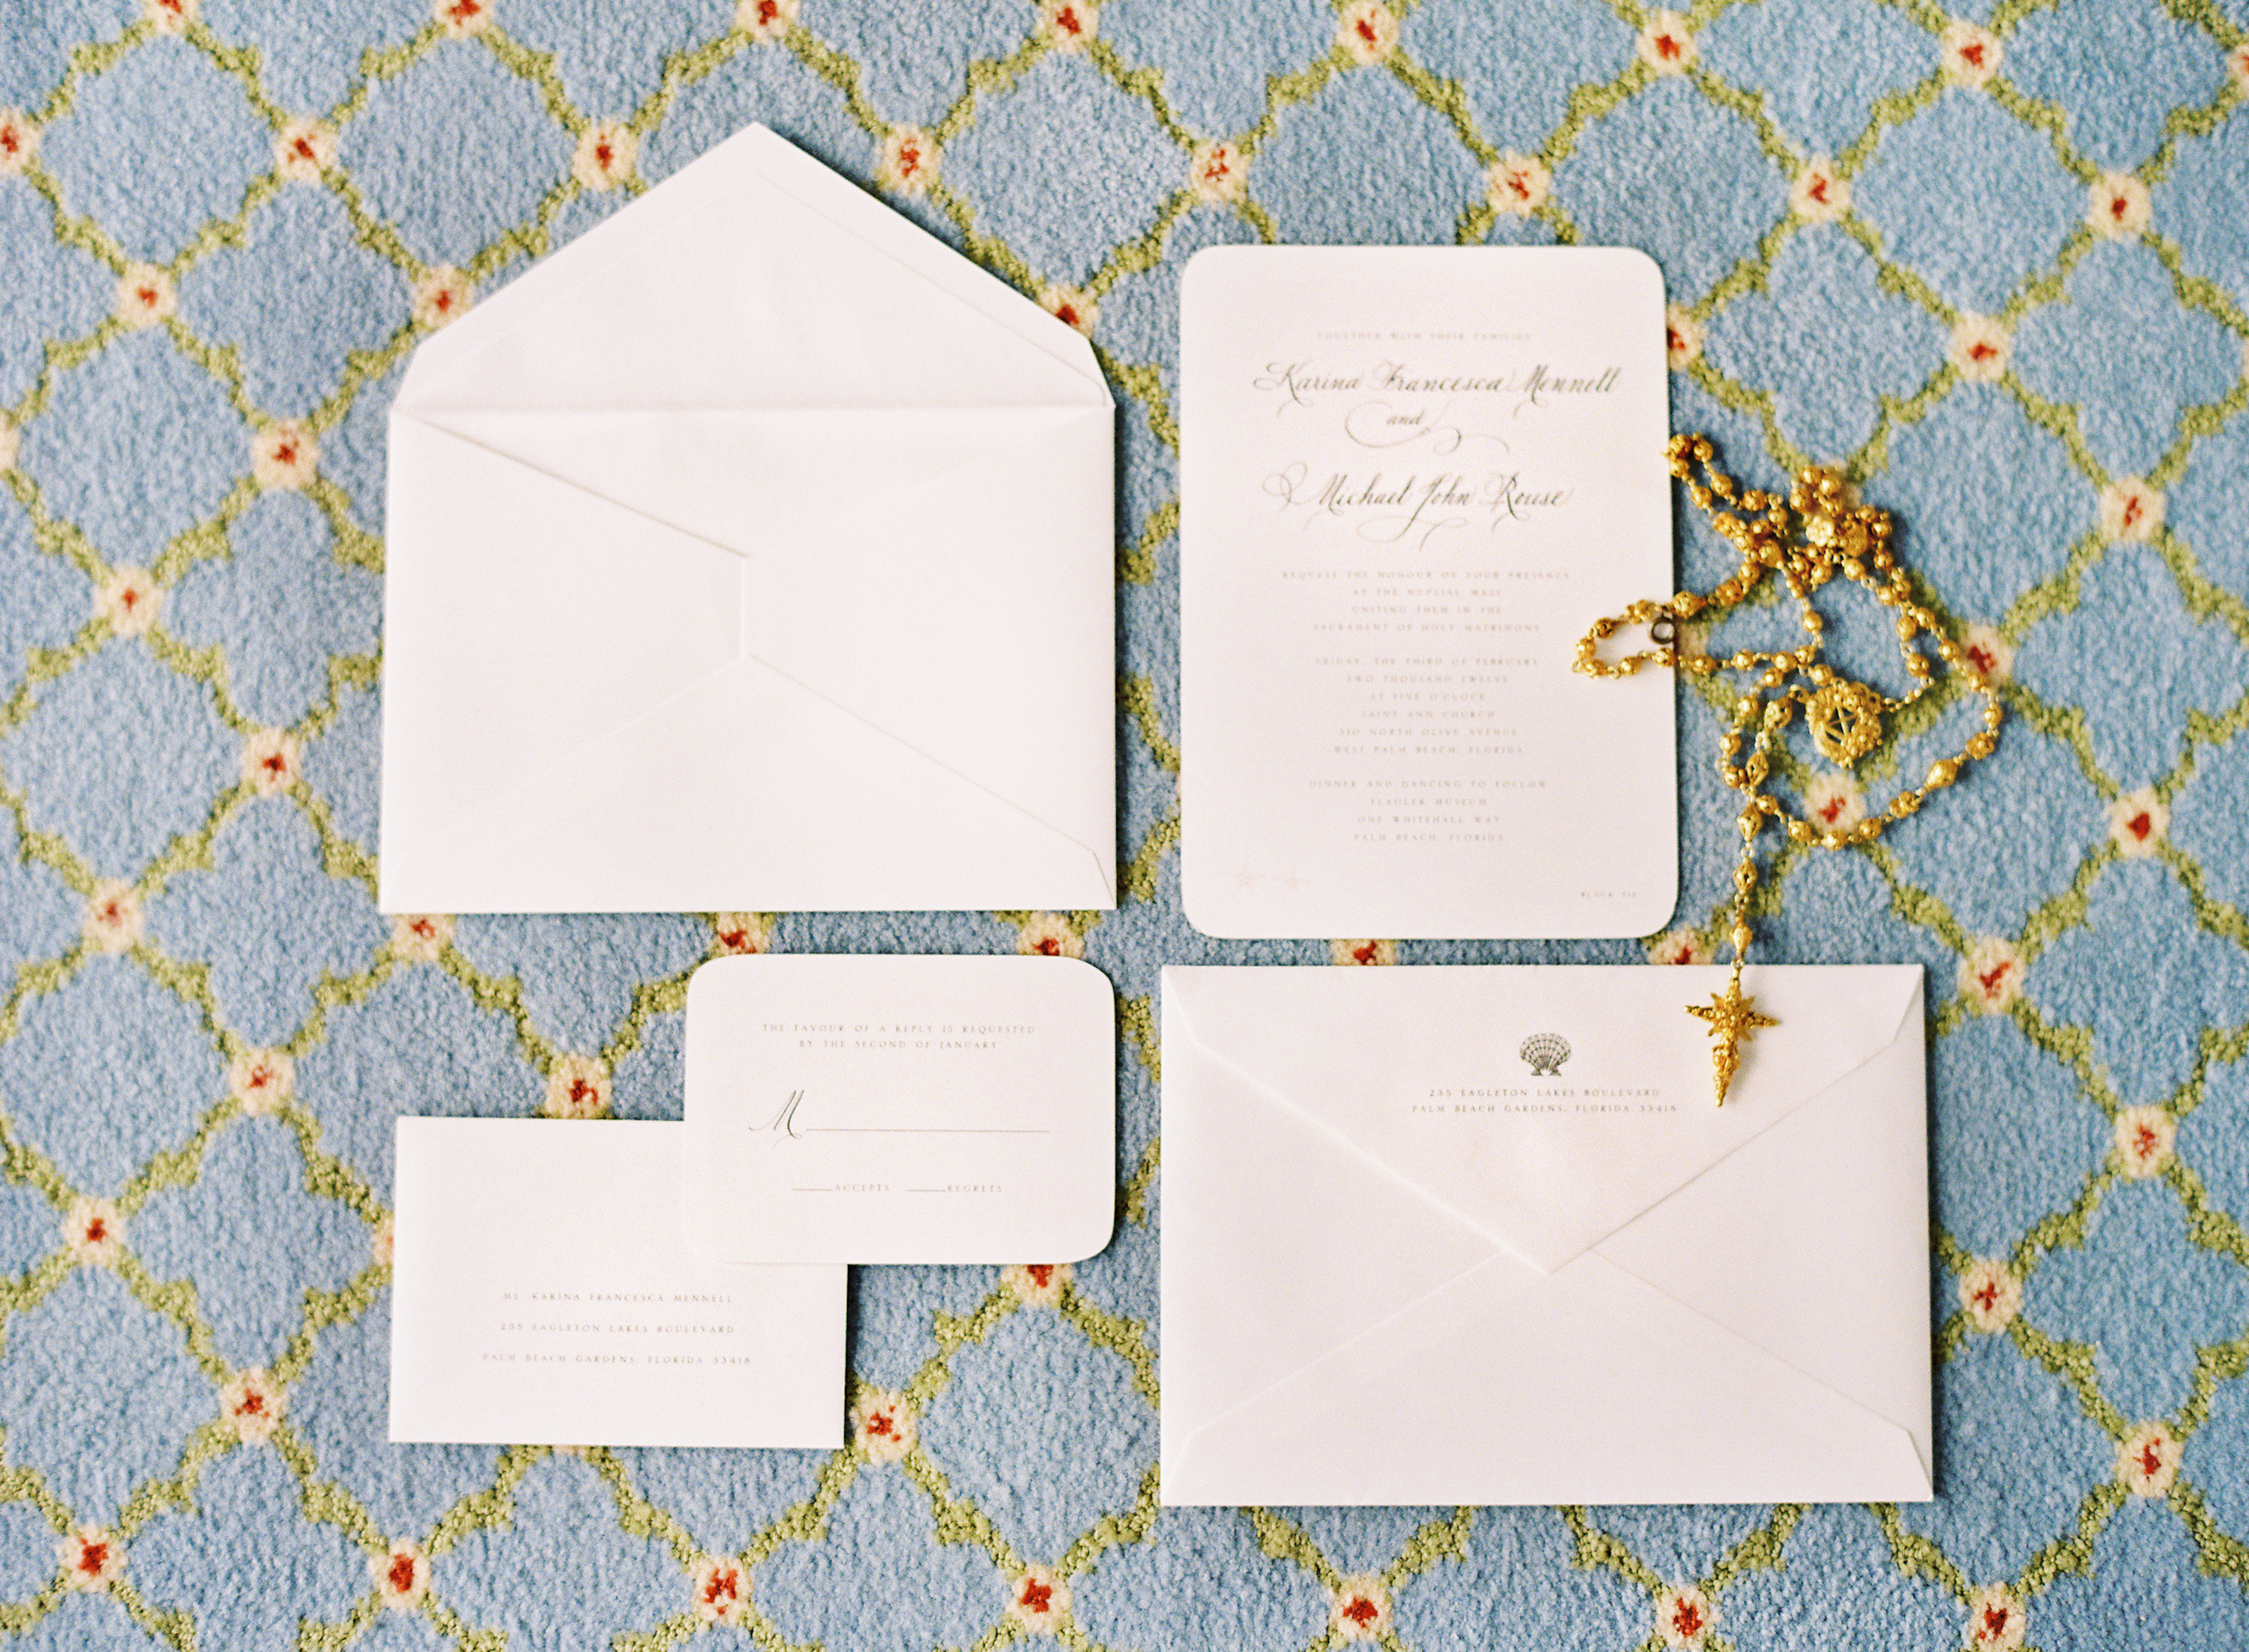 Stationery, Real Weddings, Classic, Classic Wedding Invitations, Glam Wedding Invitations, Vintage Wedding Invitations, Invitations, Elegant, Florida, Rosary